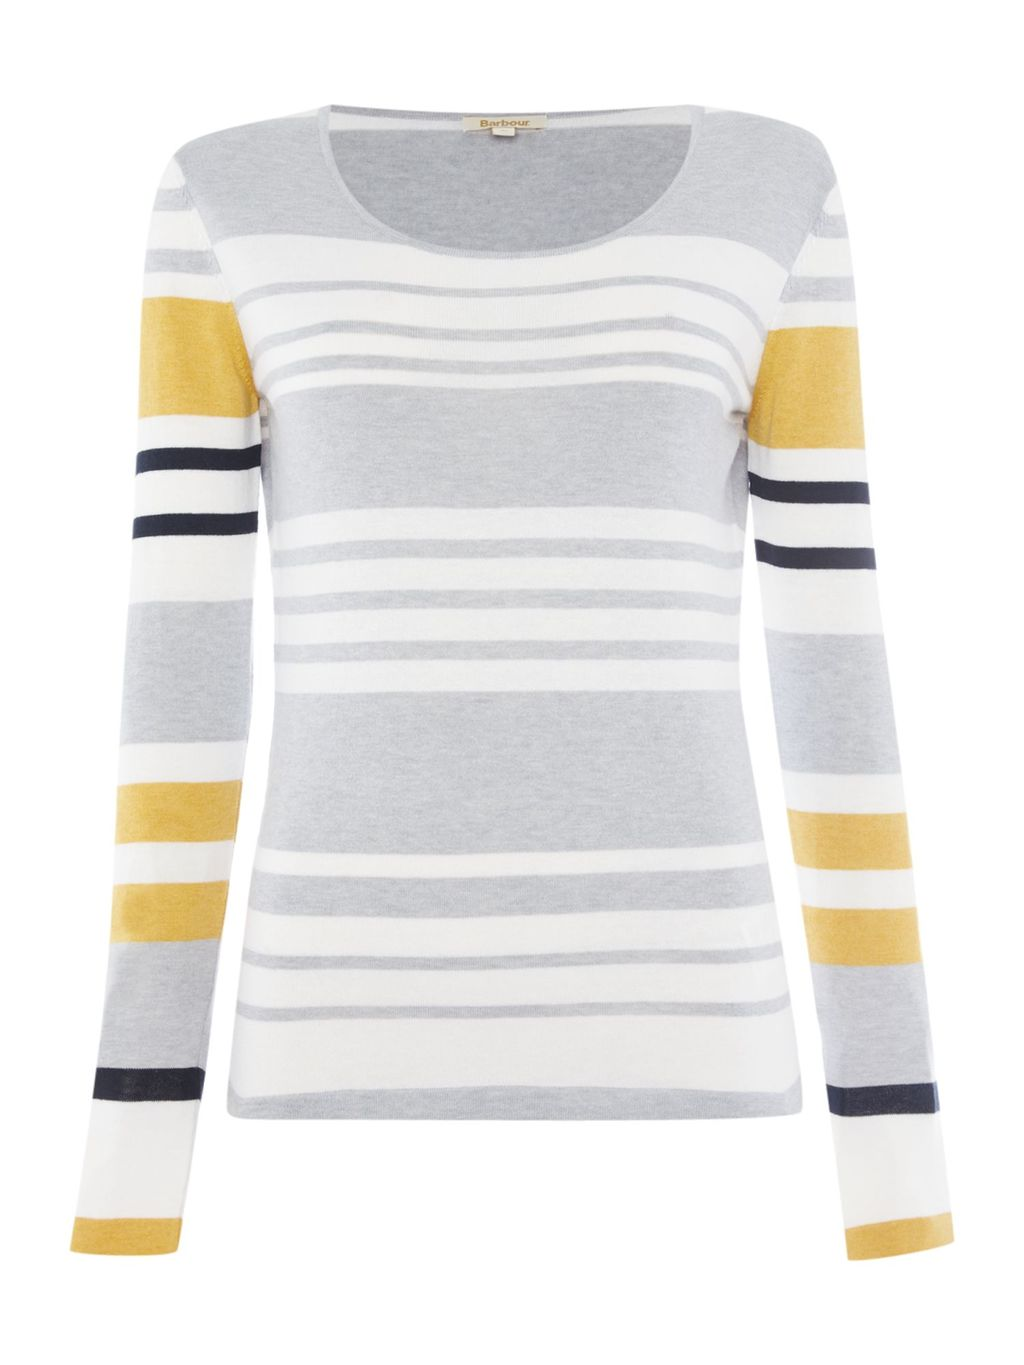 Bowline Stripe Knit Jumper, Grey - neckline: scoop neck; pattern: horizontal stripes; length: below the bottom; style: standard; secondary colour: mustard; predominant colour: light grey; occasions: casual, creative work; fibres: cotton - mix; fit: standard fit; sleeve length: long sleeve; sleeve style: standard; texture group: knits/crochet; pattern type: knitted - fine stitch; pattern size: standard; multicoloured: multicoloured; season: a/w 2015; wardrobe: highlight